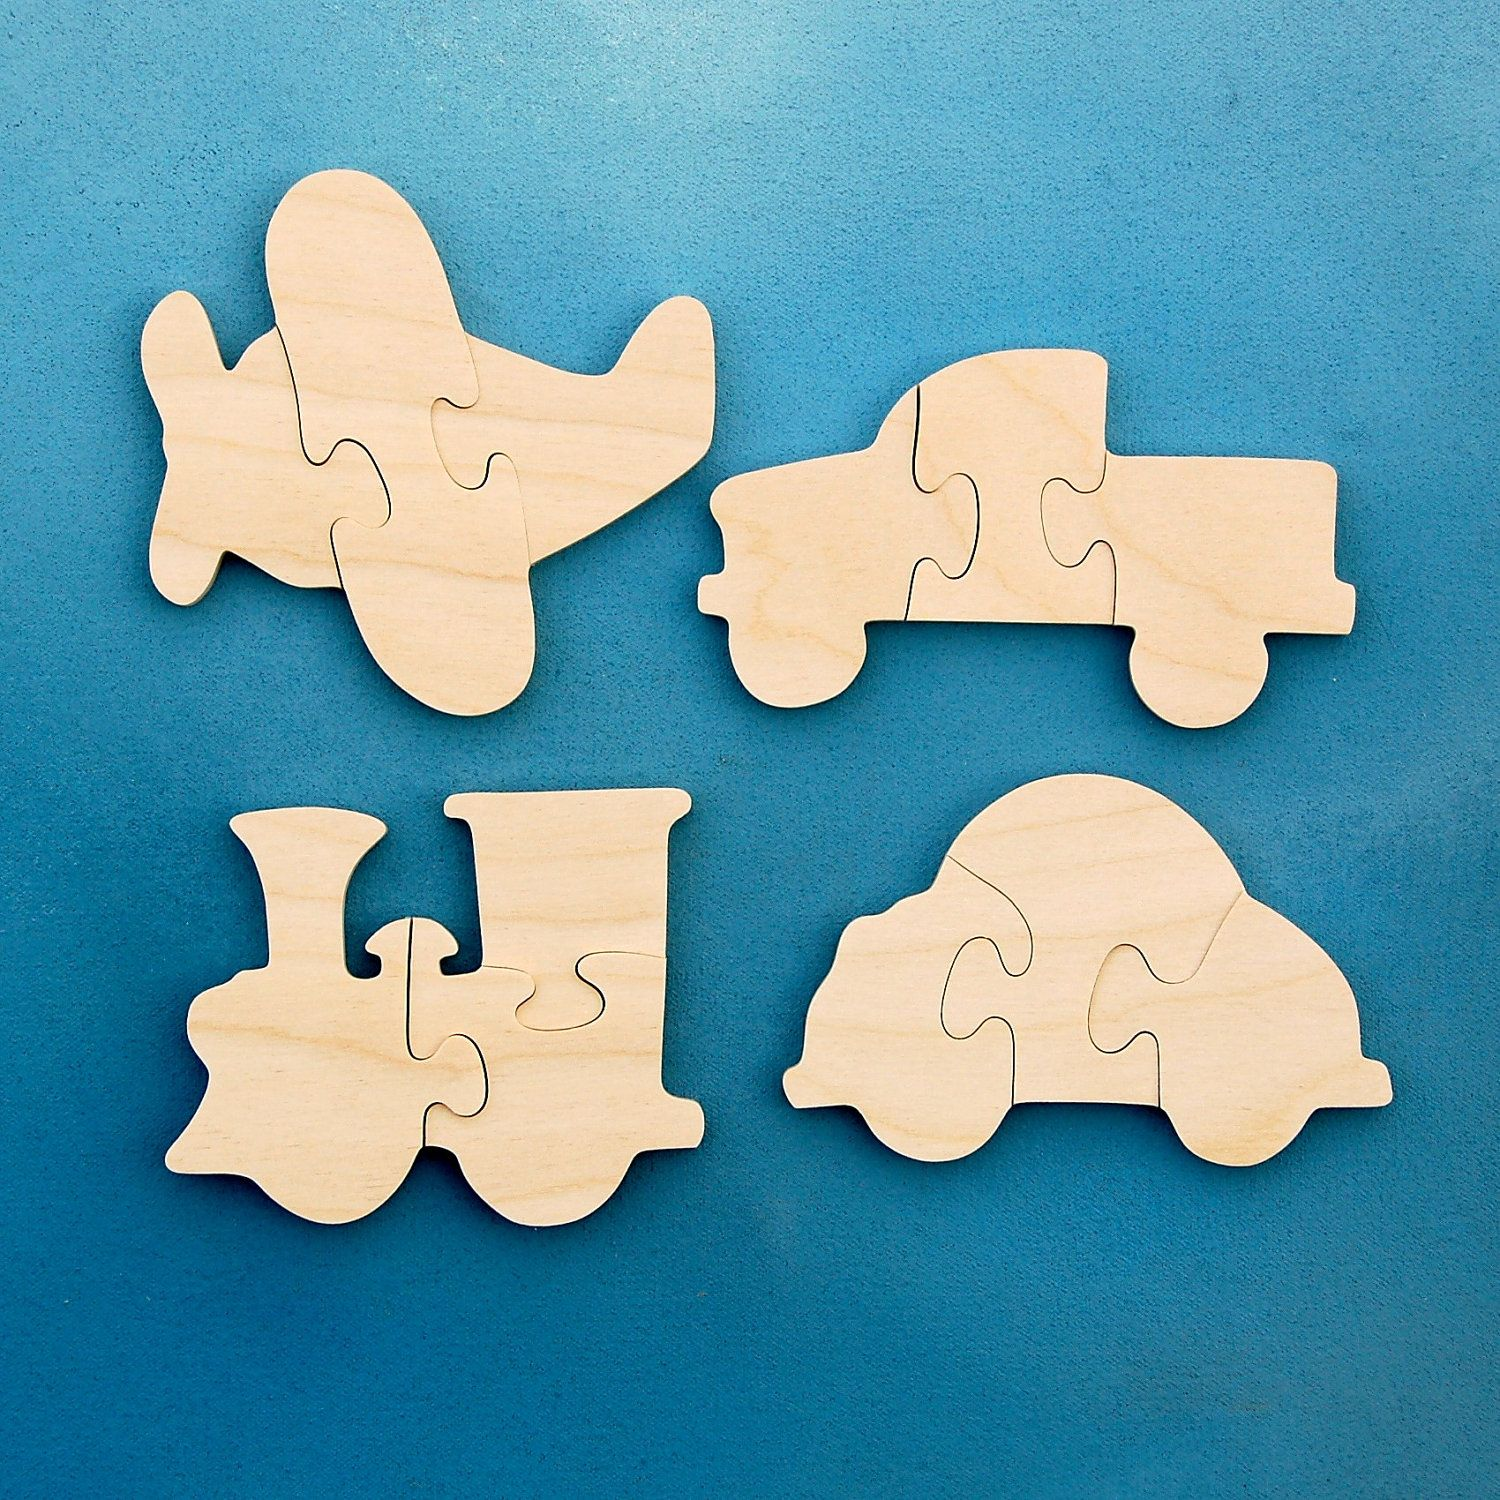 Kids Wooden Puzzle | www.imgkid.com - The Image Kid Has It! Wooden Toddler Puzzle